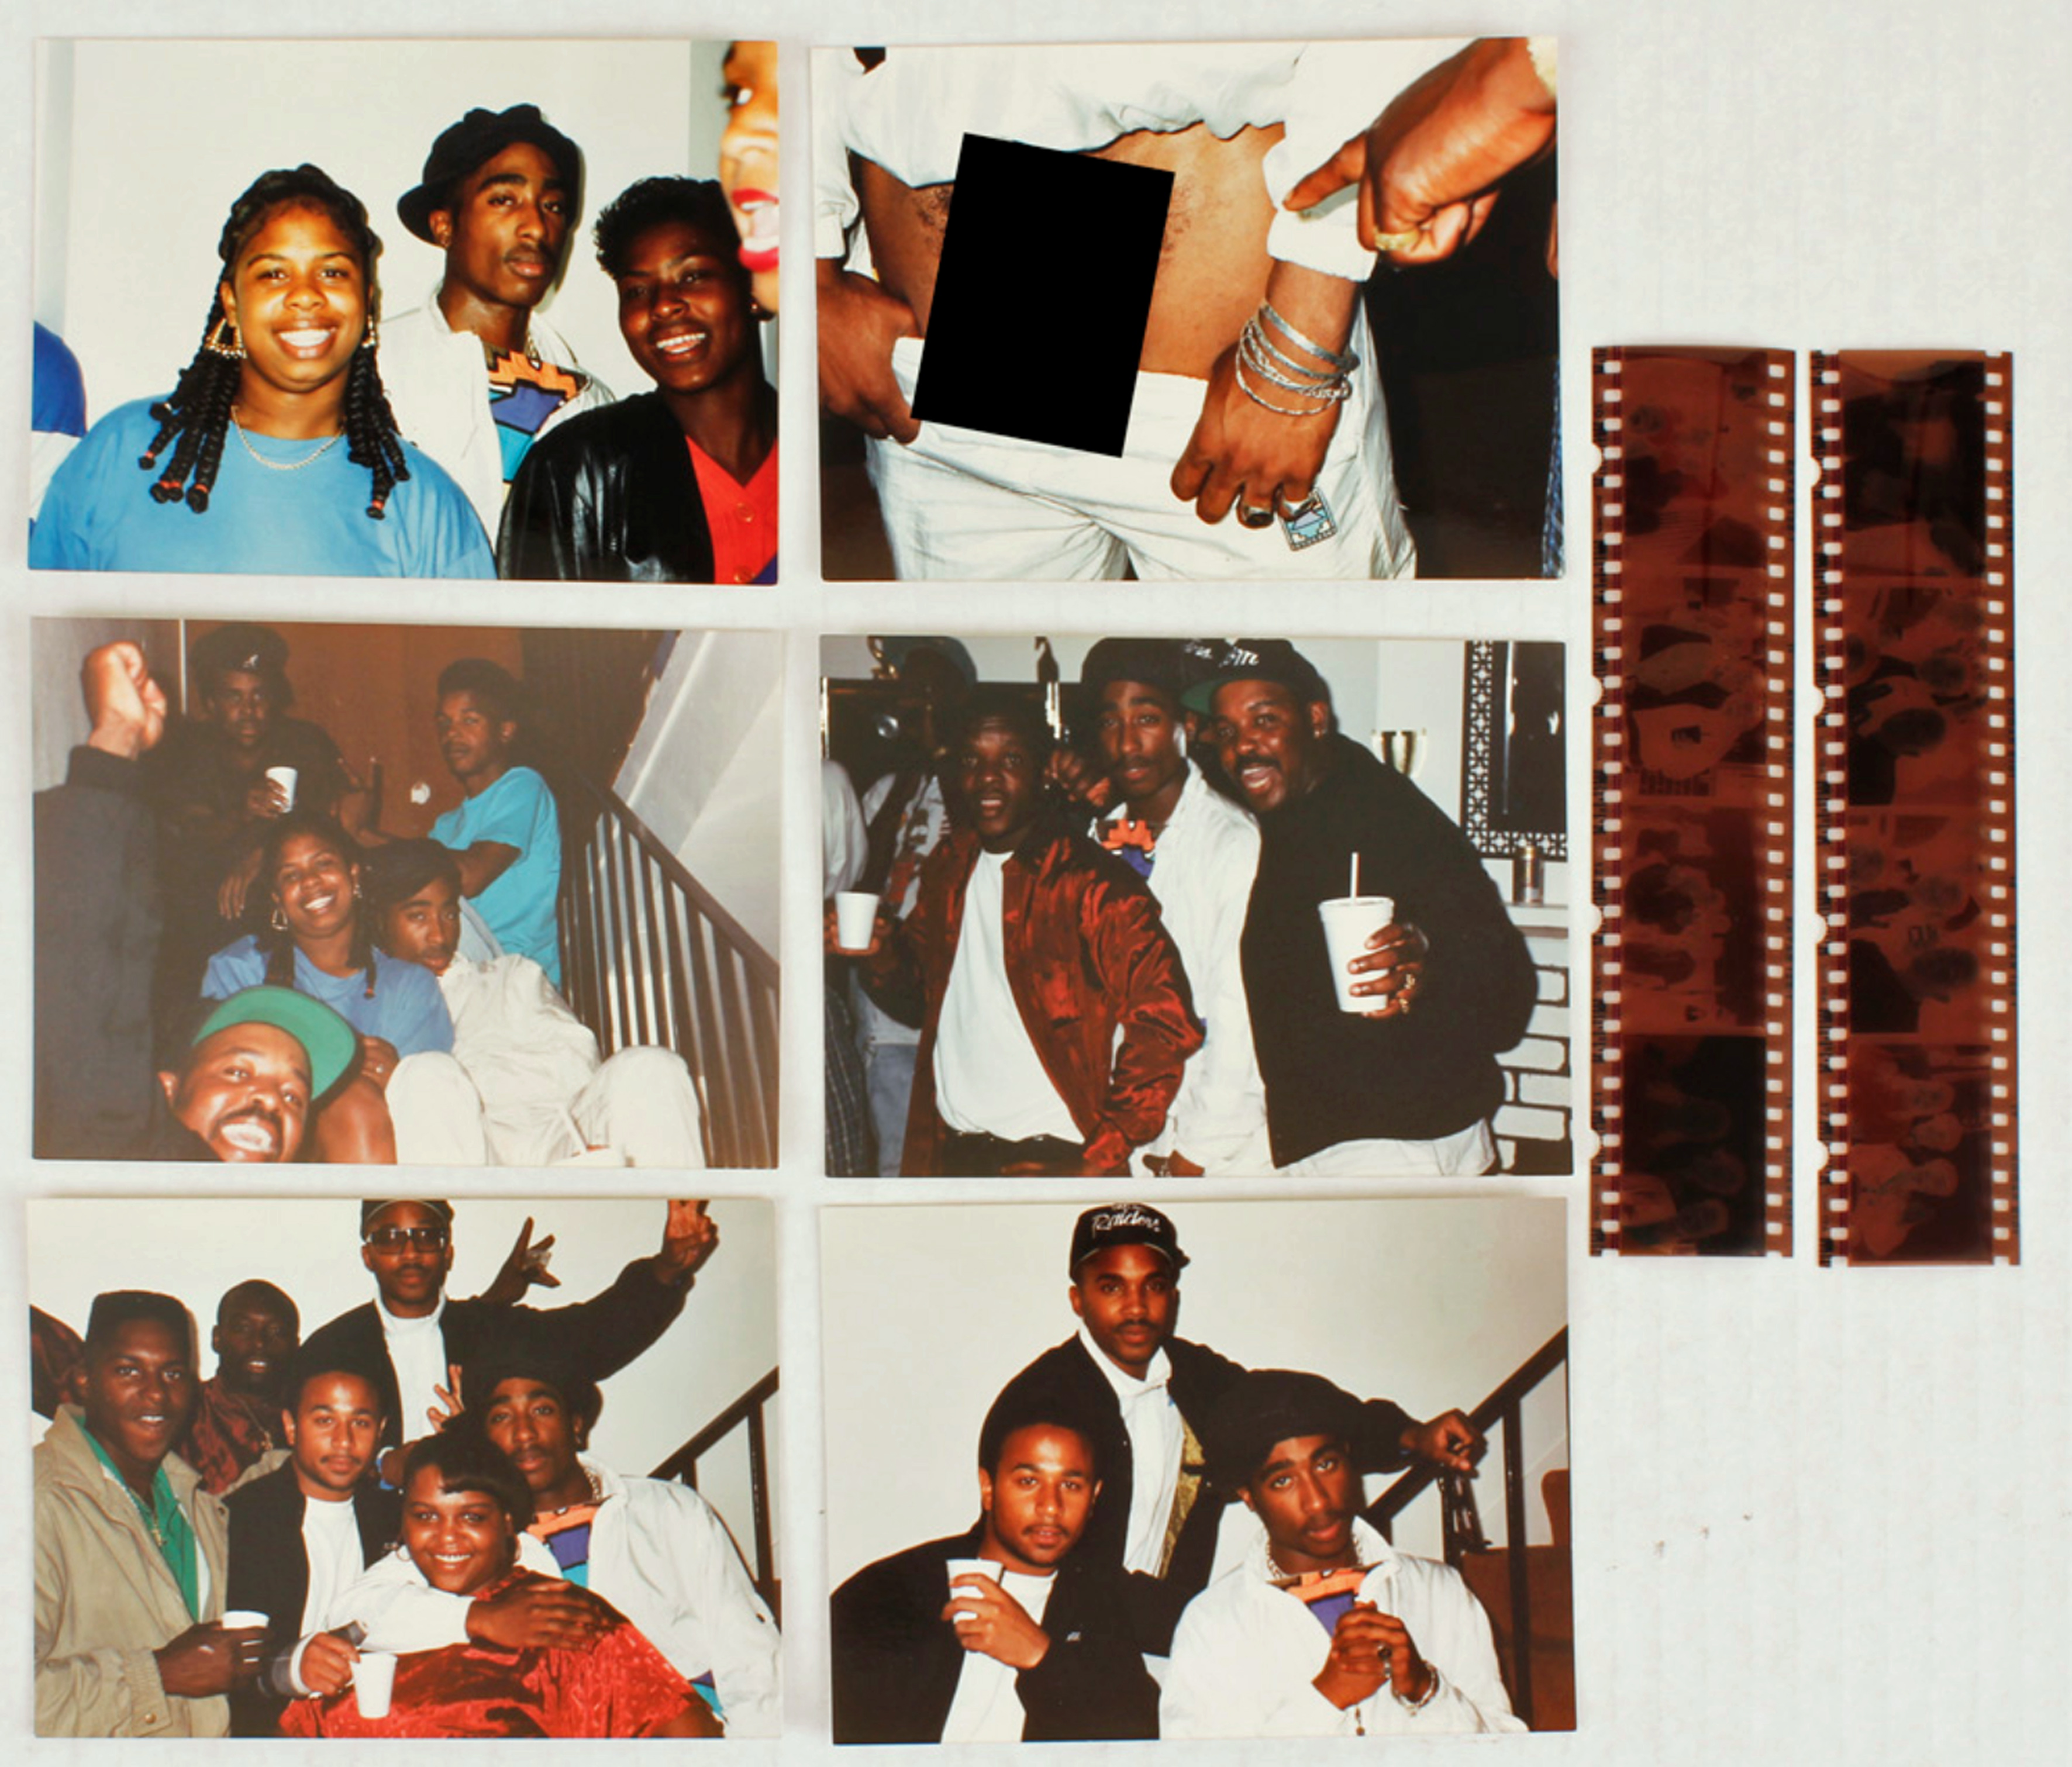 Tupac Shakur auction with Gotta Have Rock and Roll